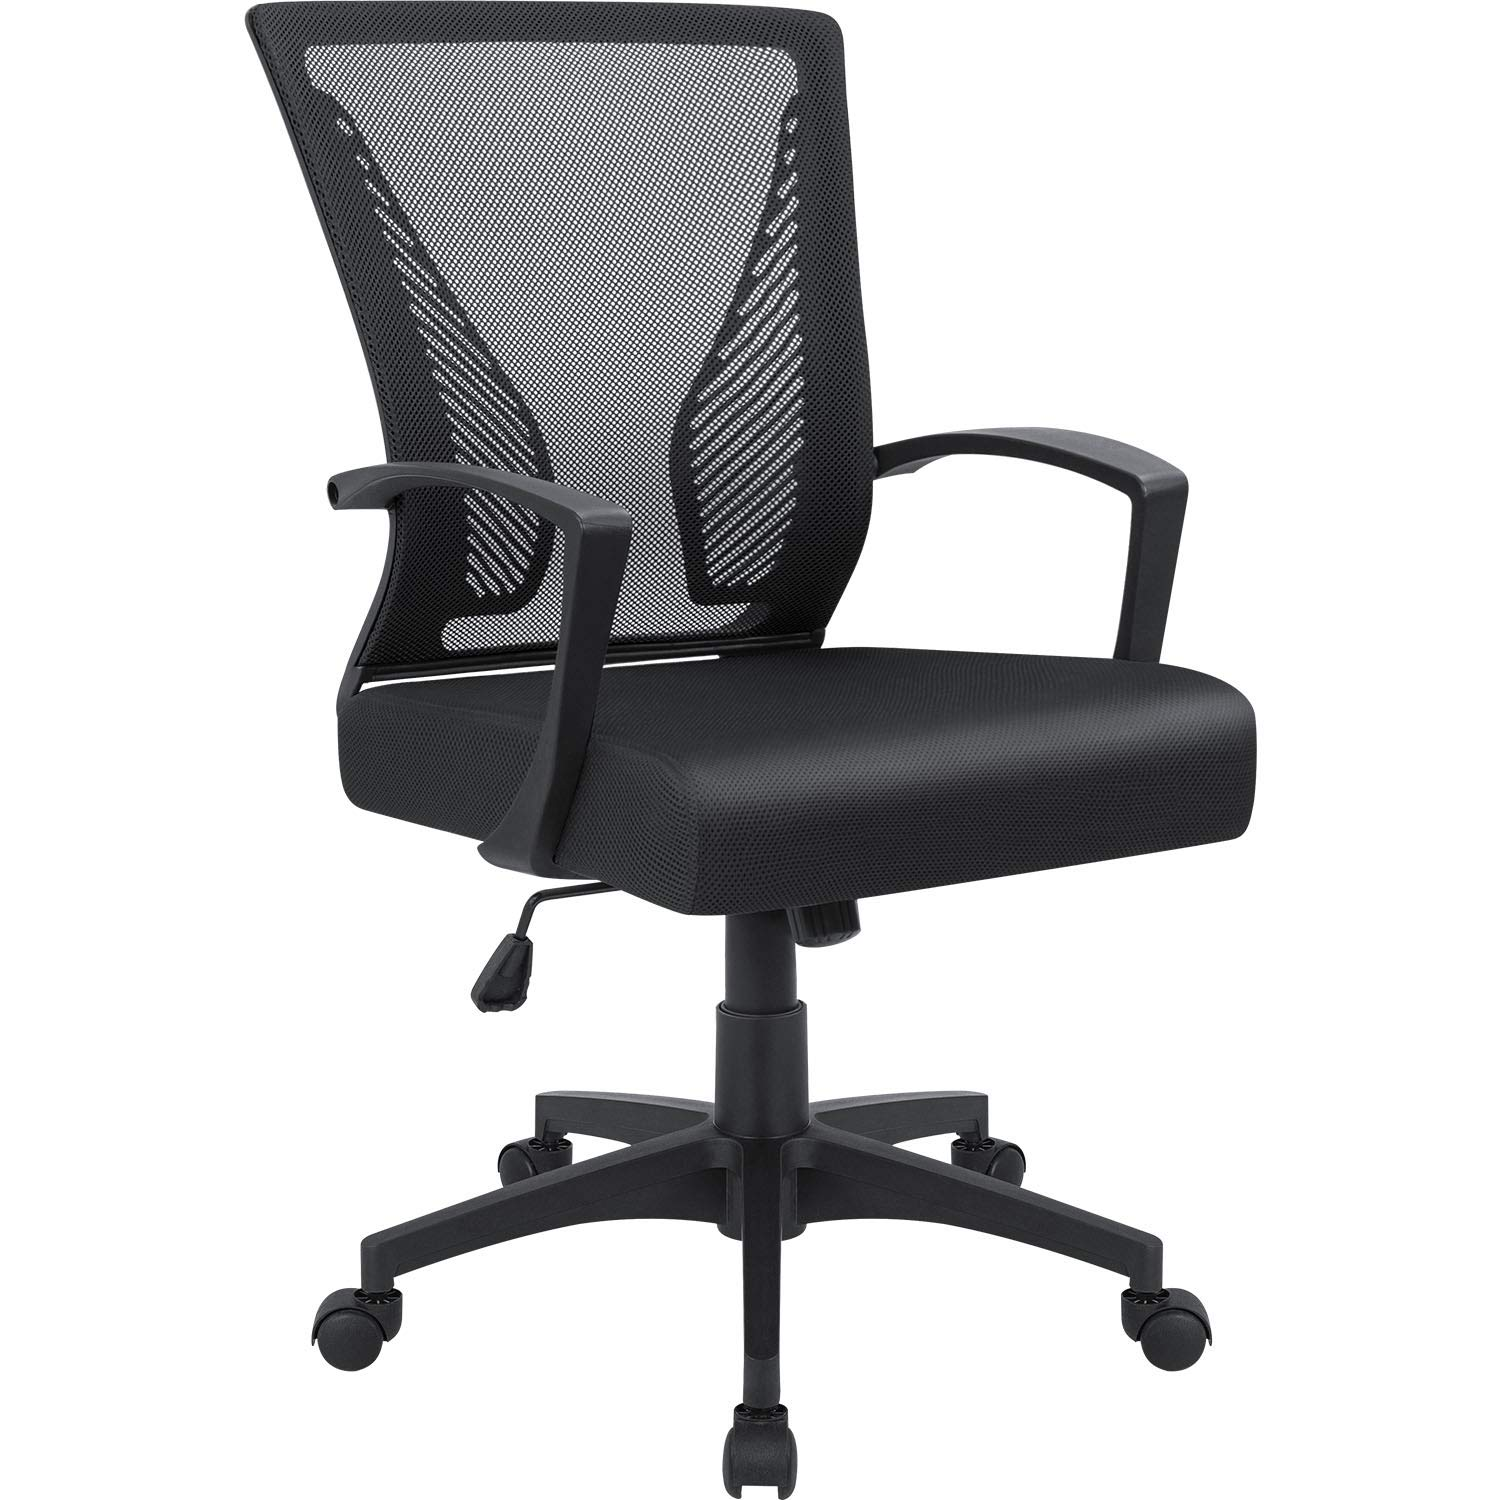 Office Chair Armrest Amazon.com: Furmax Office Chair Mid Back Swivel Lumbar Support Desk Chair,  Computer Ergonomic Mesh Chair with Armrest (Black): Kitchen u0026 Dining